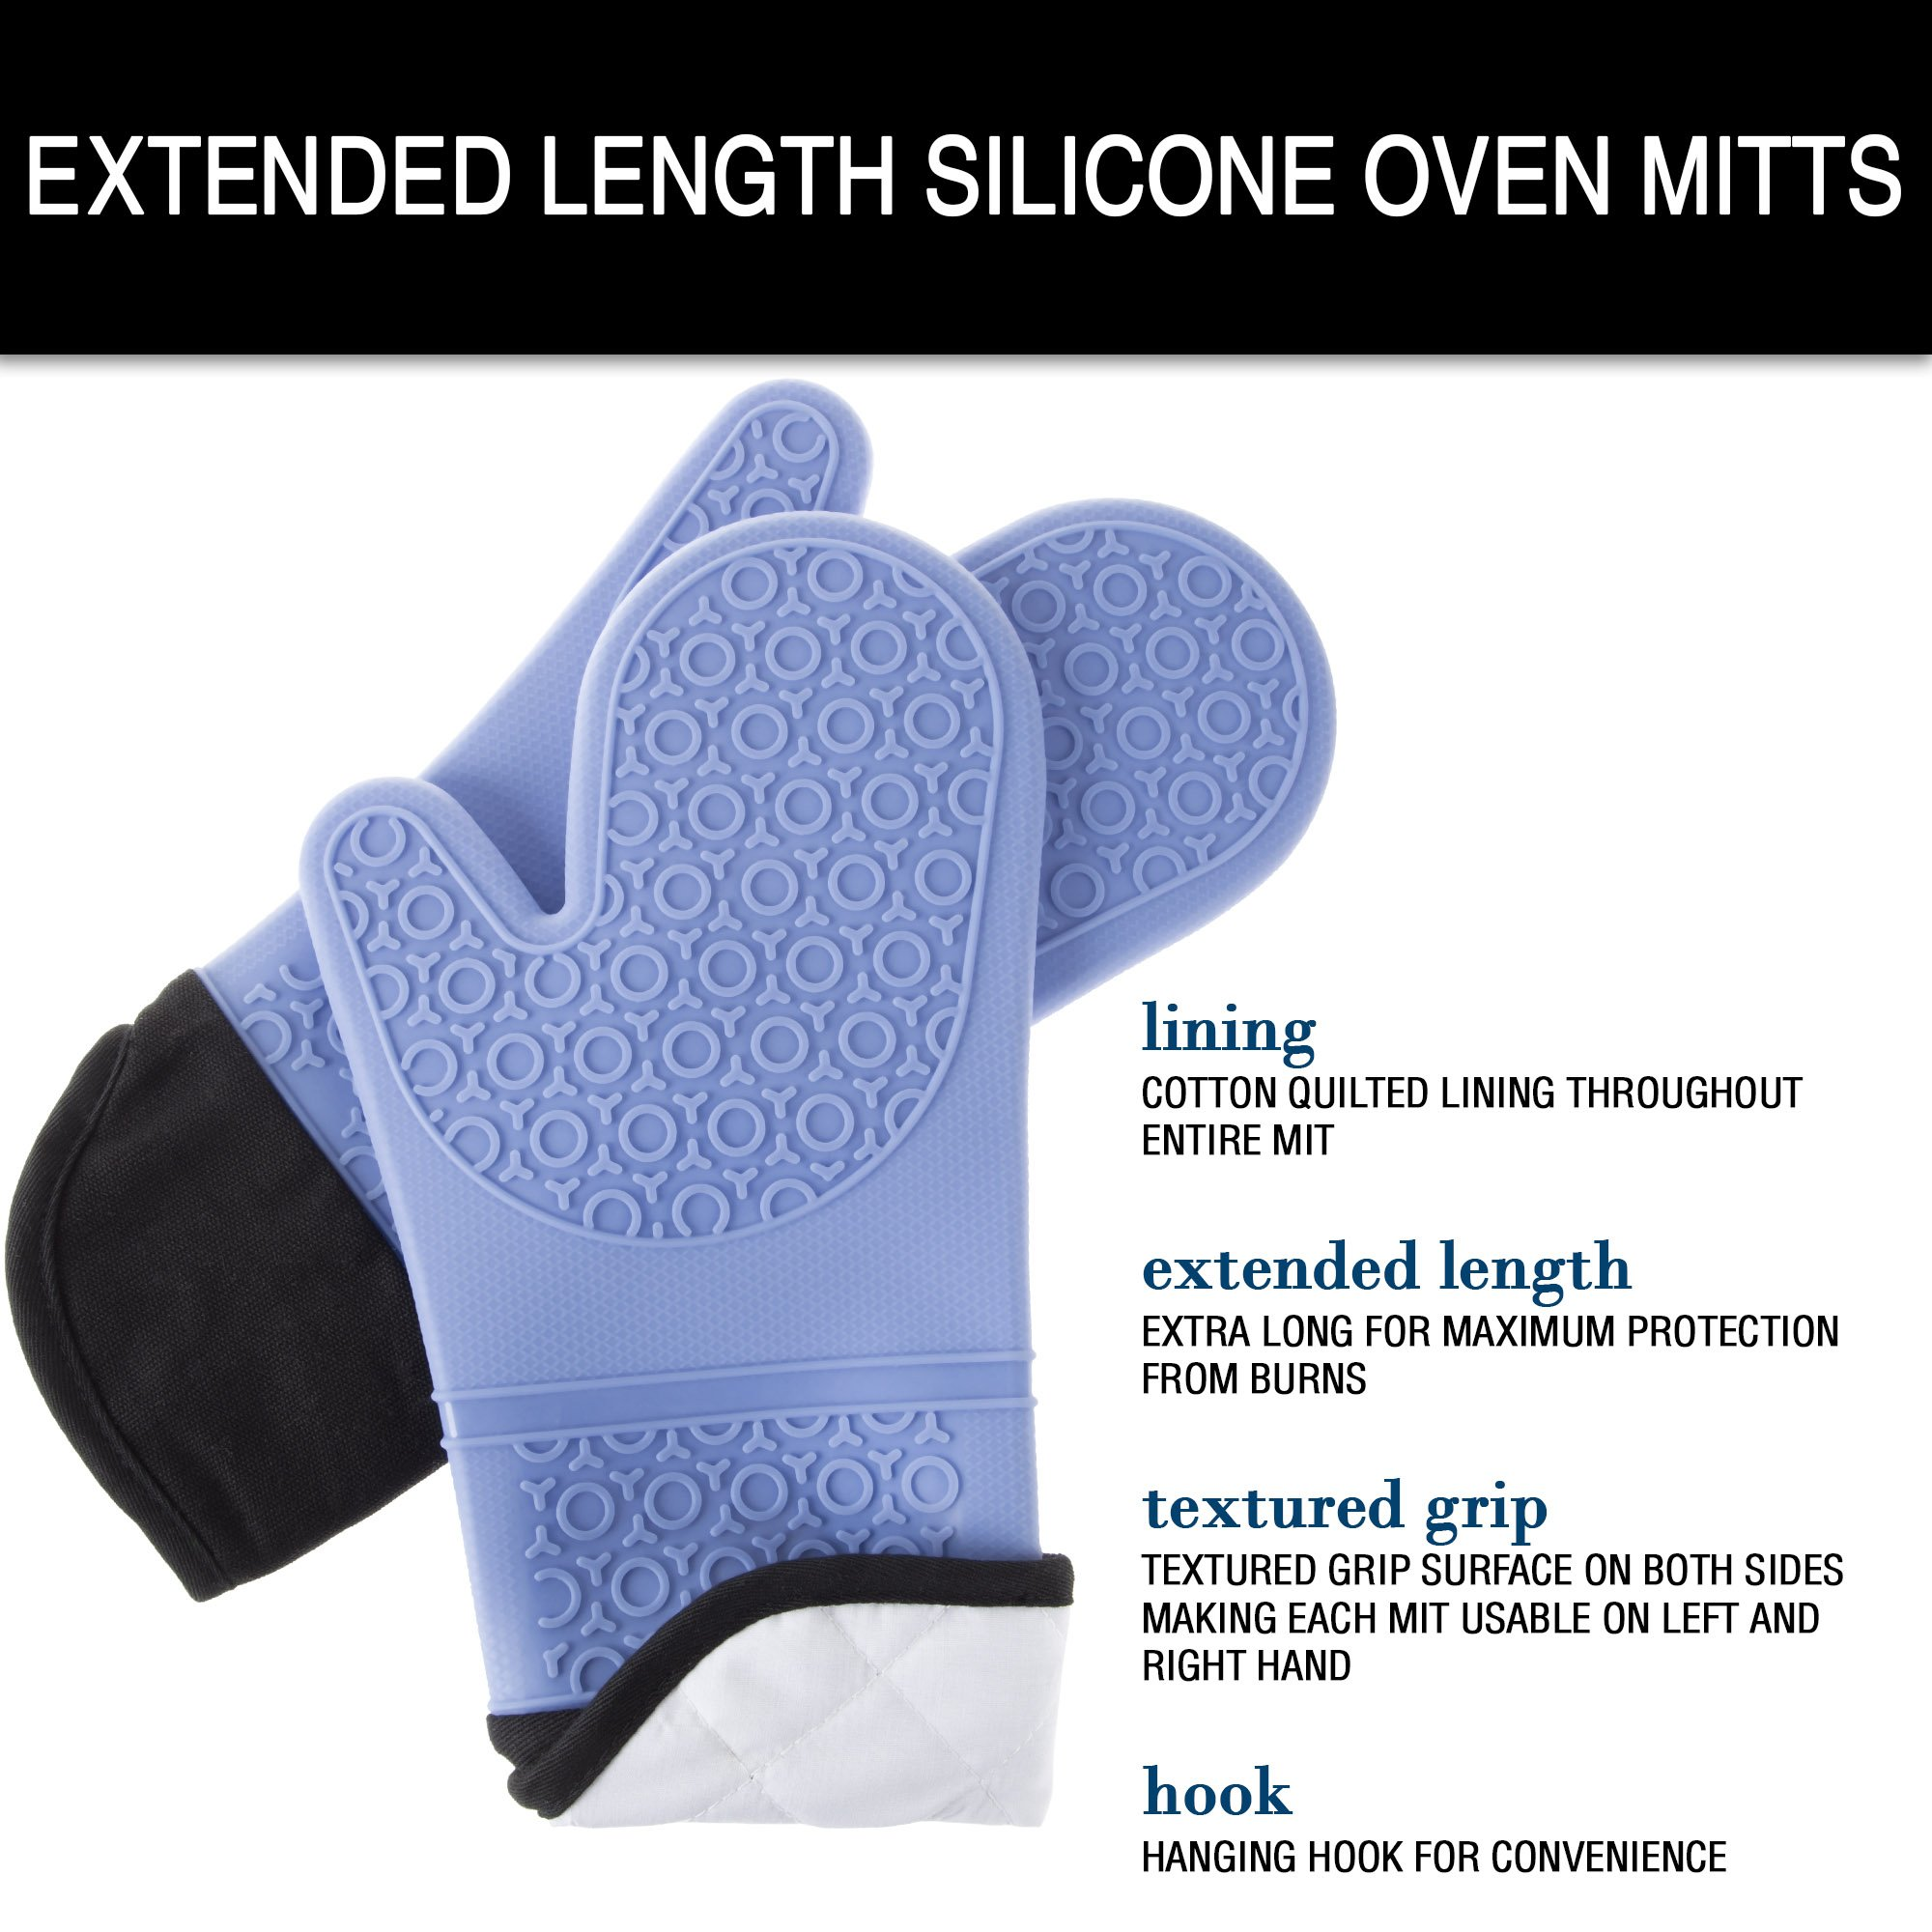 Silicone Oven Mitts – Extra Long Professional Quality Heat Resistant with Quilted Lining and 2-sided Textured Grip – 1 pair Blue by Lavish Home by Lavish Home (Image #5)